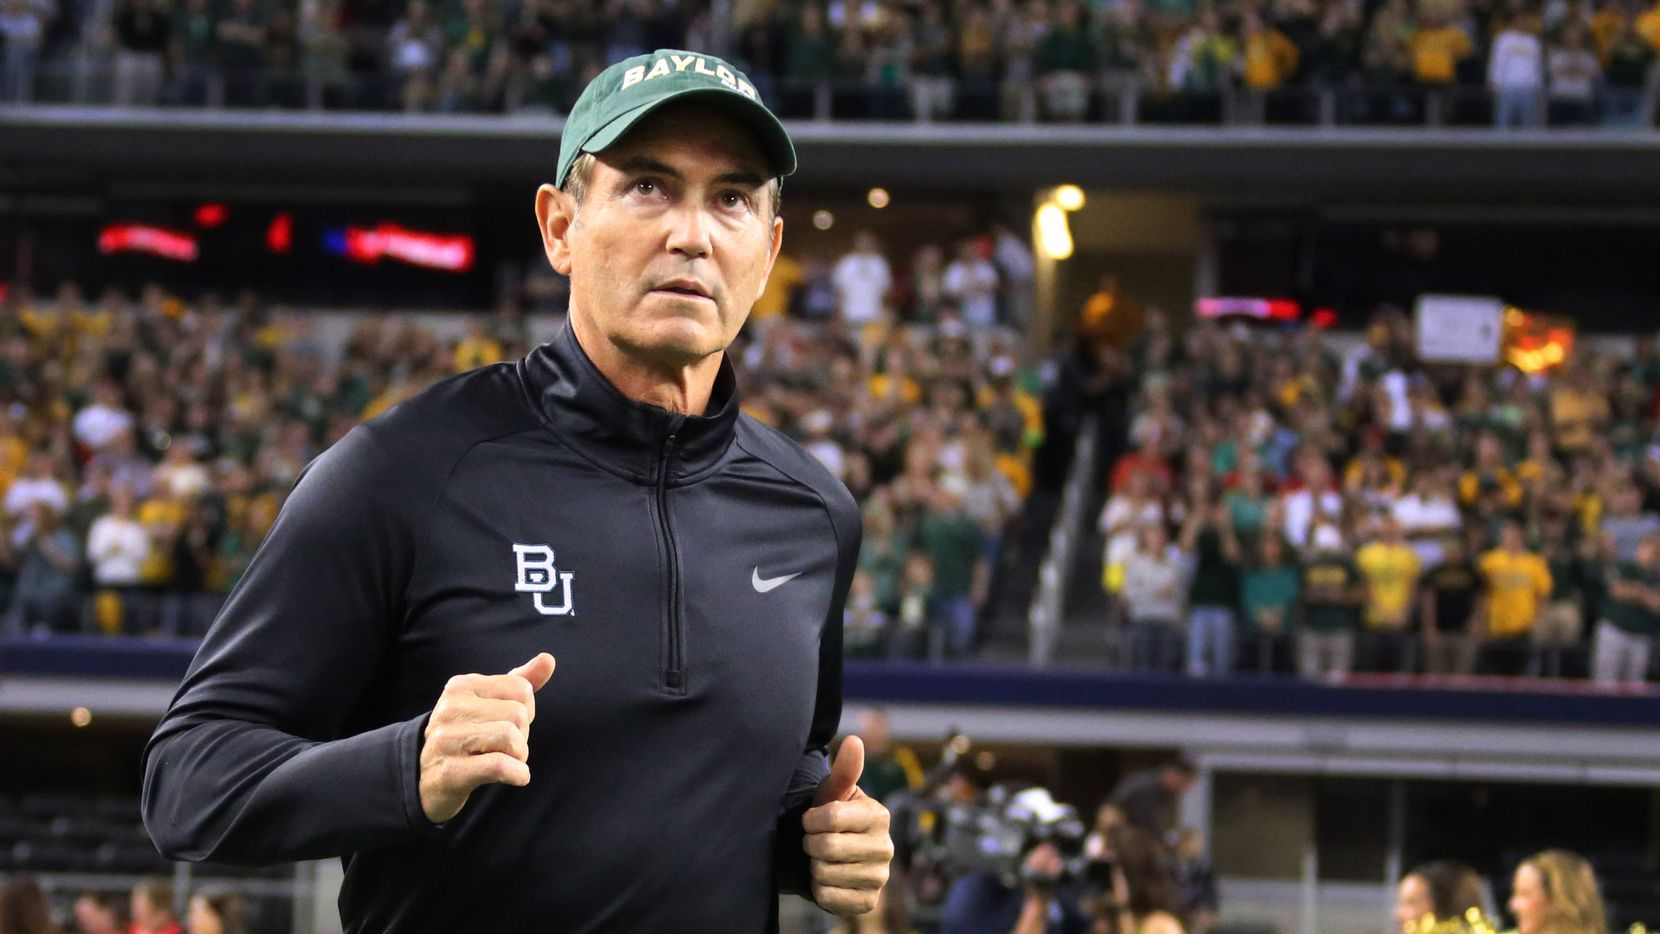 Baylor head coach Art Briles takes the field before the Texas Tech University Red Raiders vs. the Baylor University Bears NCAA football game at AT&T Stadium in Arlington on Saturday, November 16, 2013.  (Louis DeLuca/Dallas Morning News) / mug - mugshot - headshot - portrait / 12072013xSPORTS